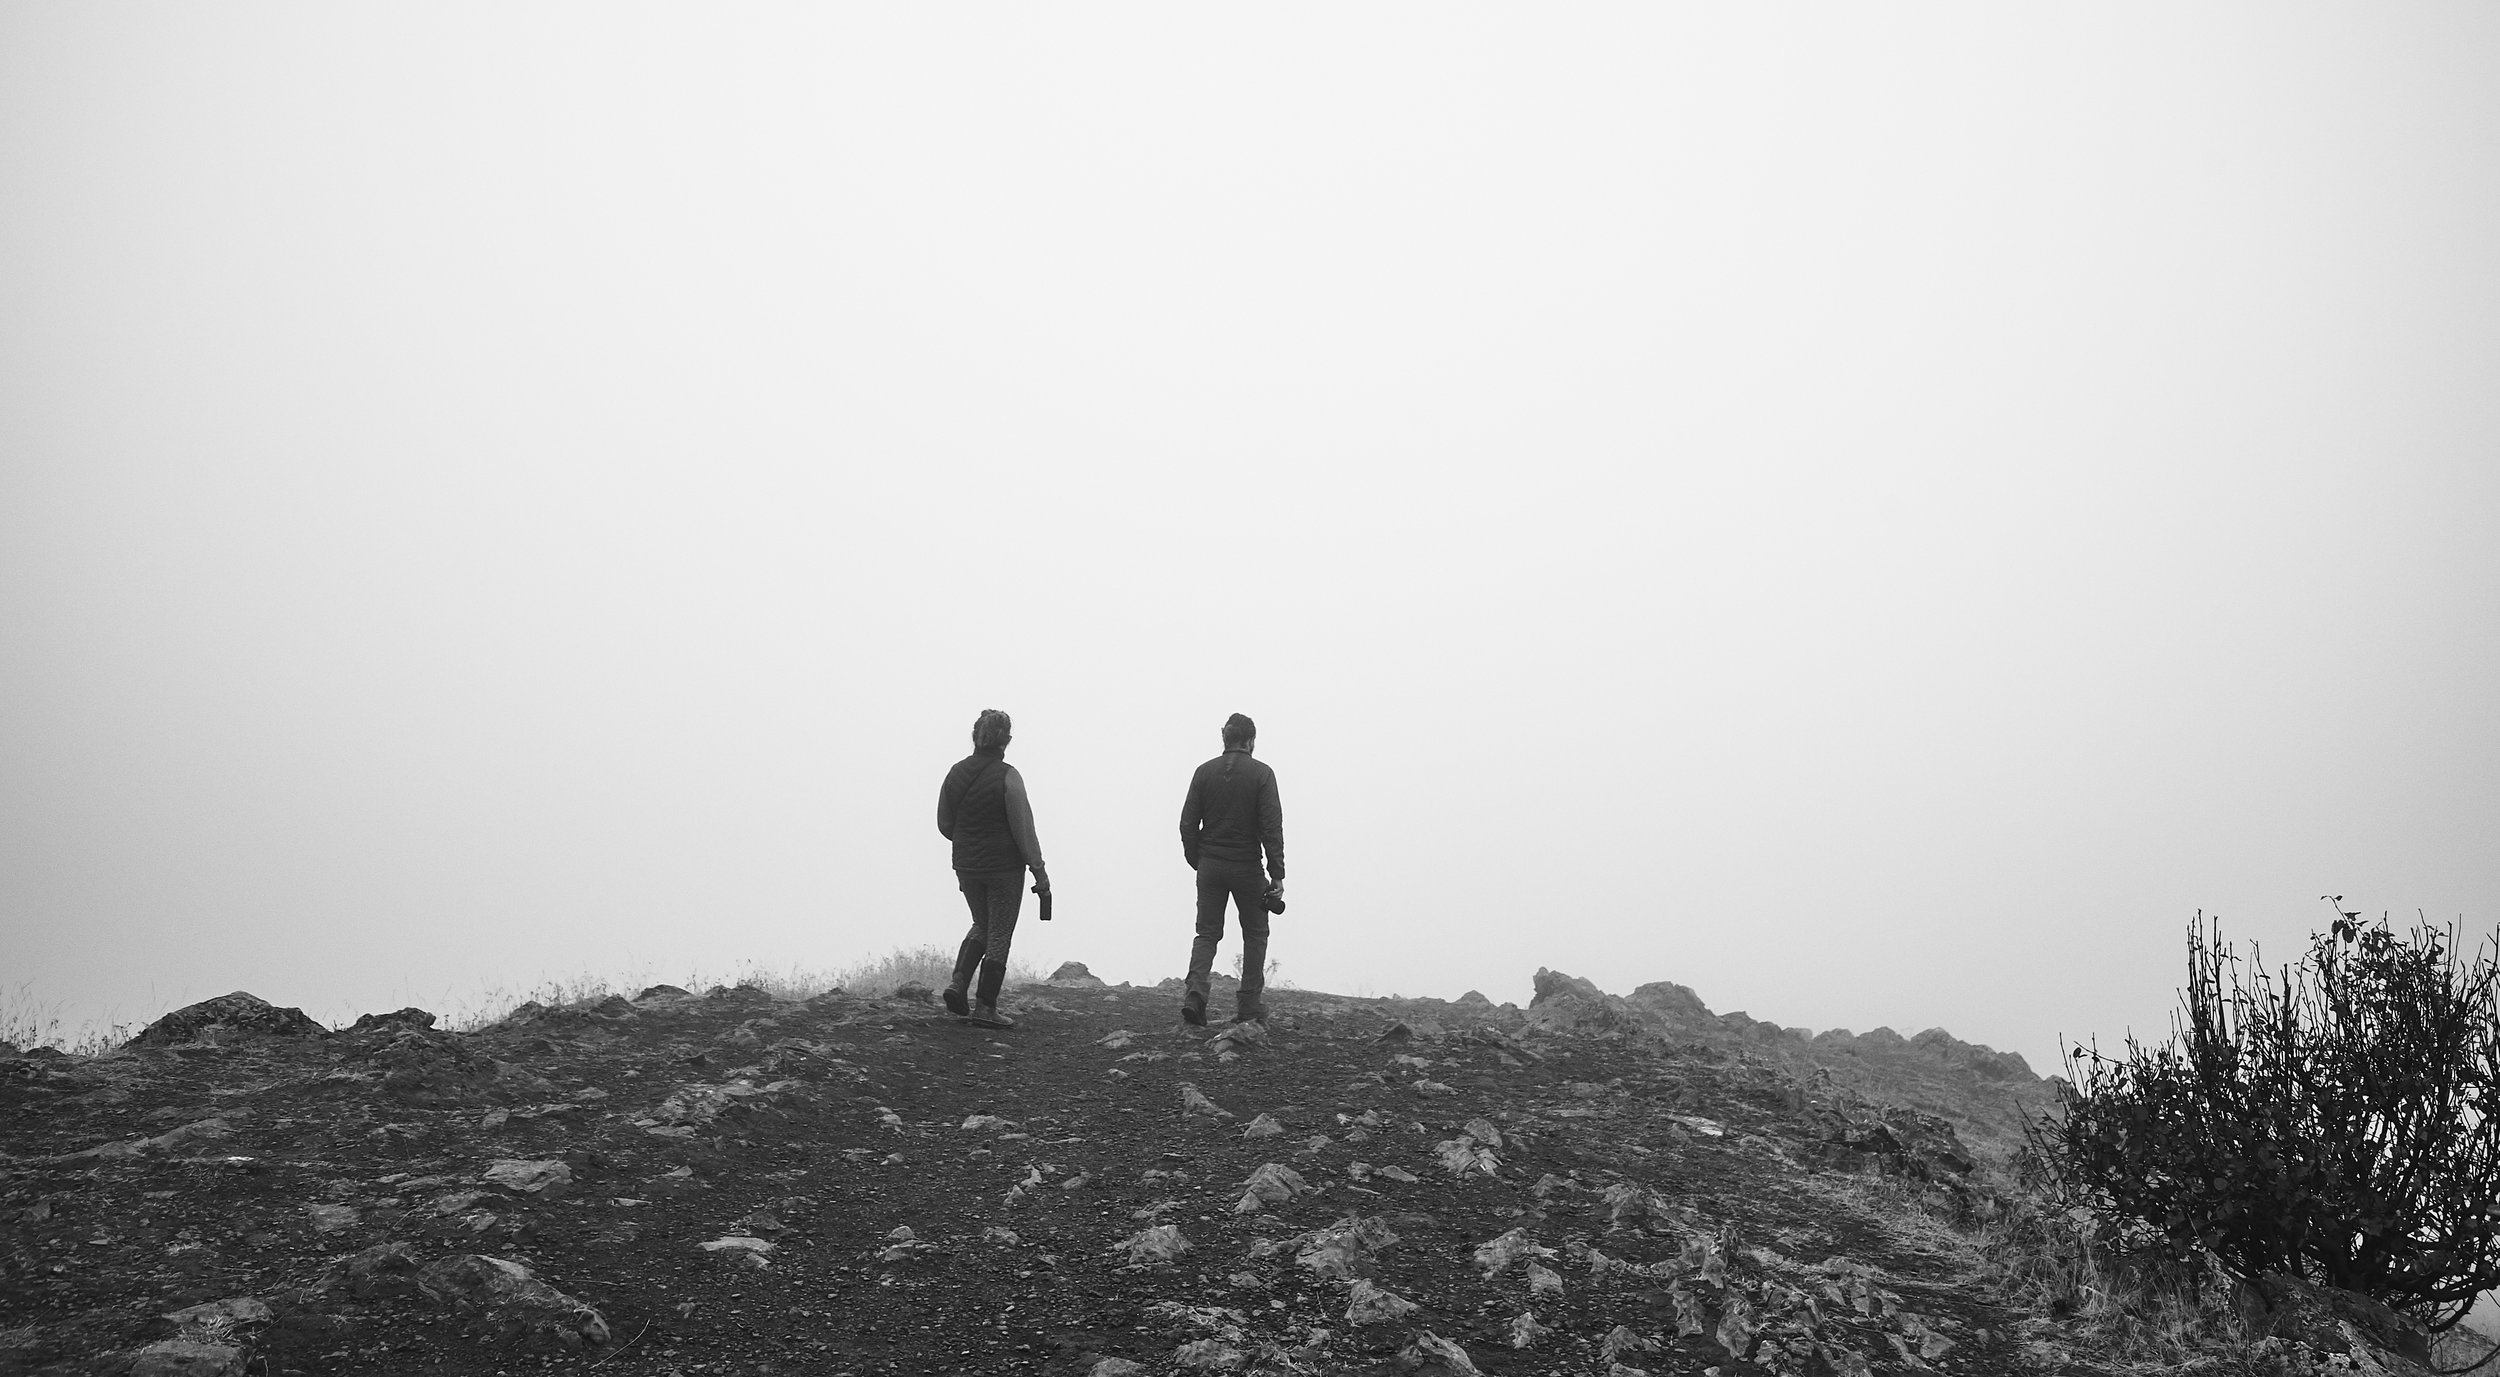 Lost in the fog.